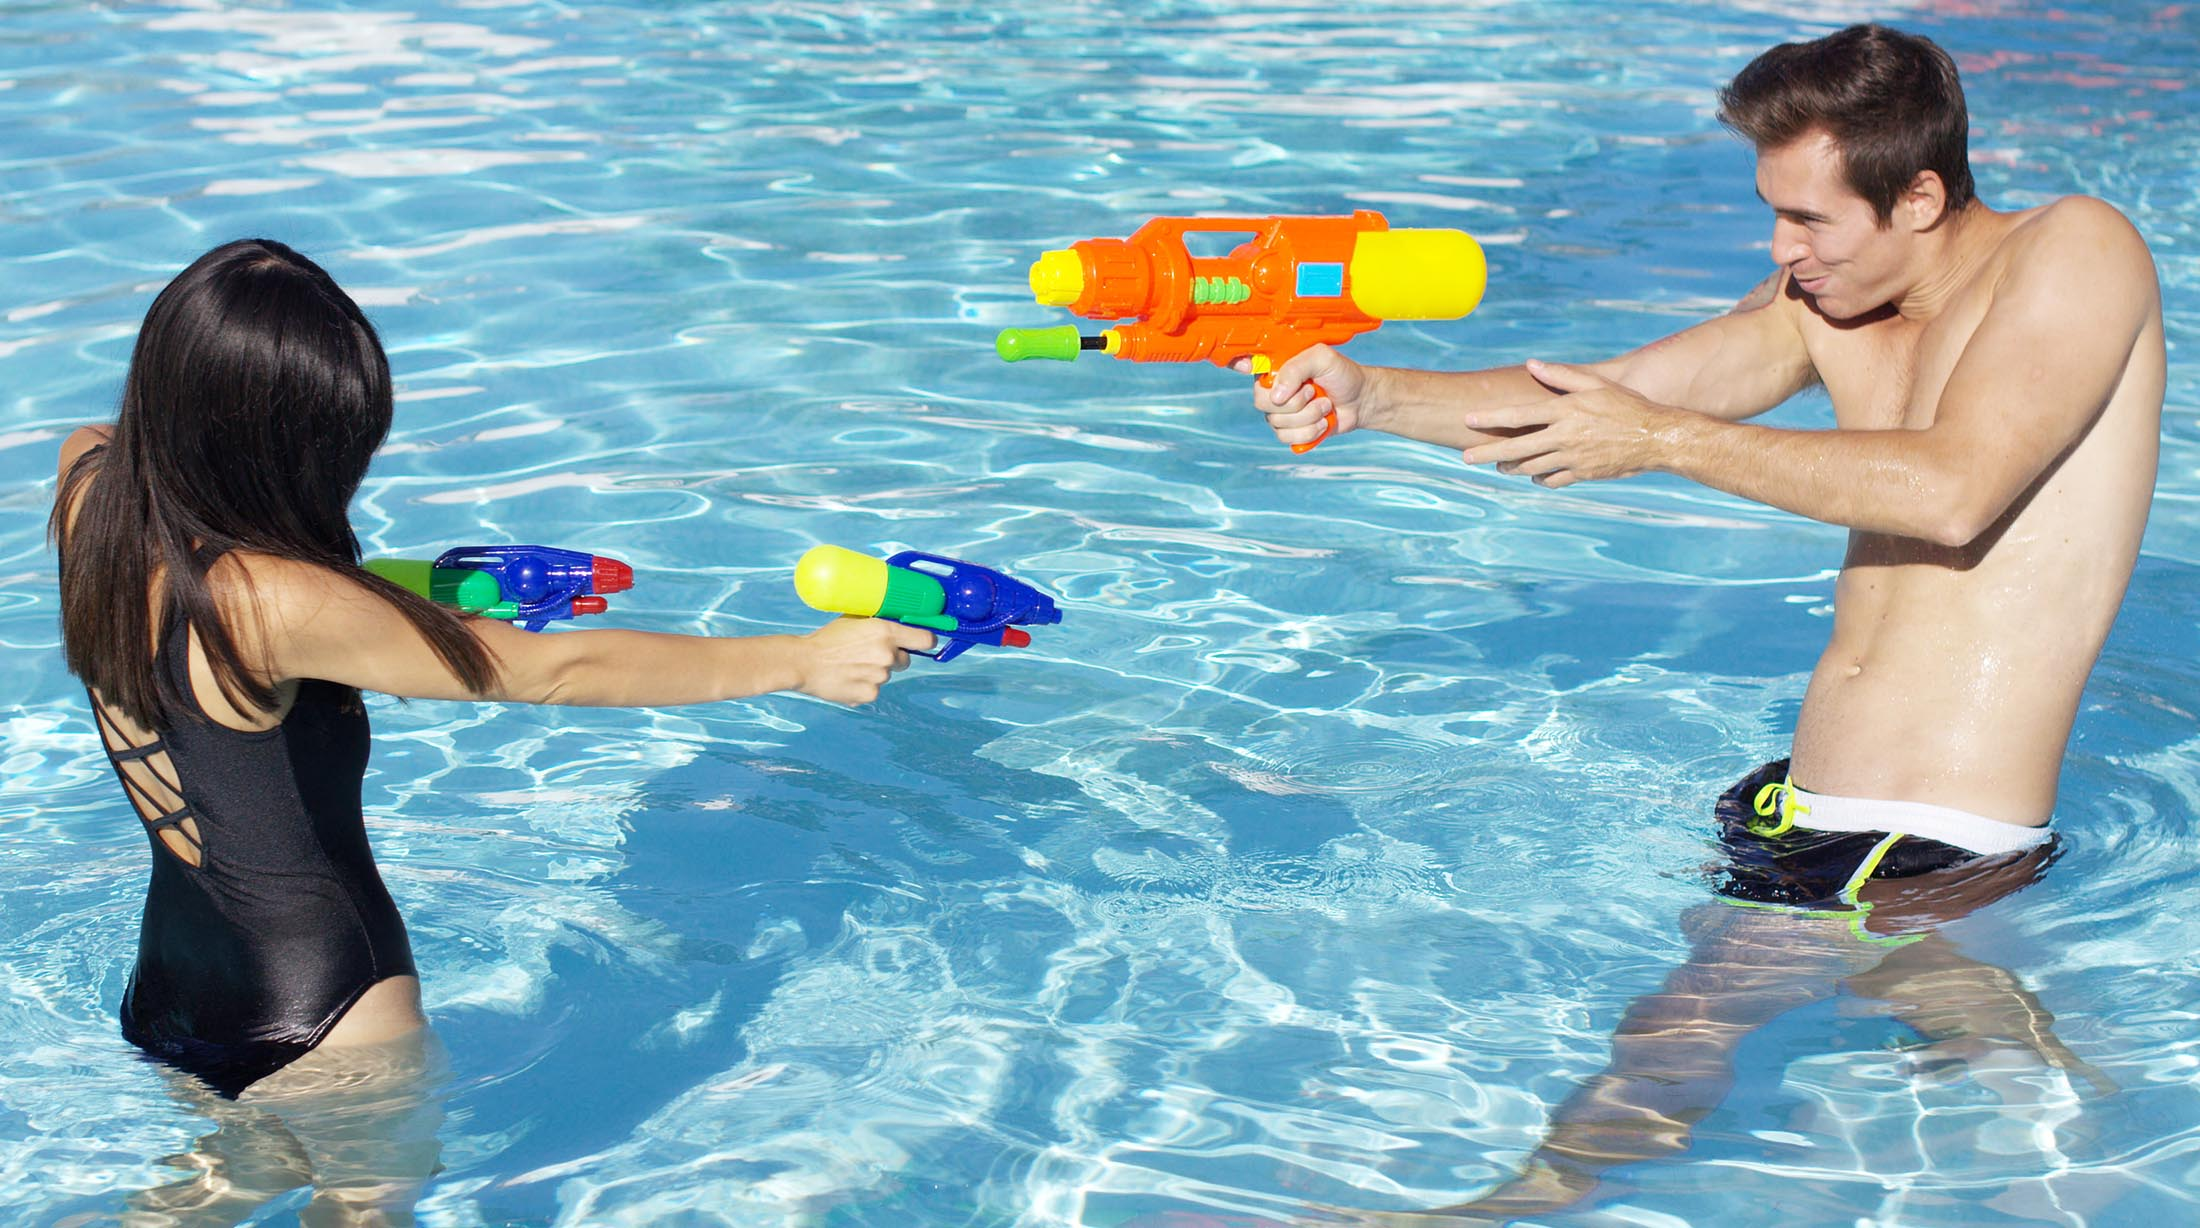 Playful Couple Battling in Pool with Water and Nerf Guns